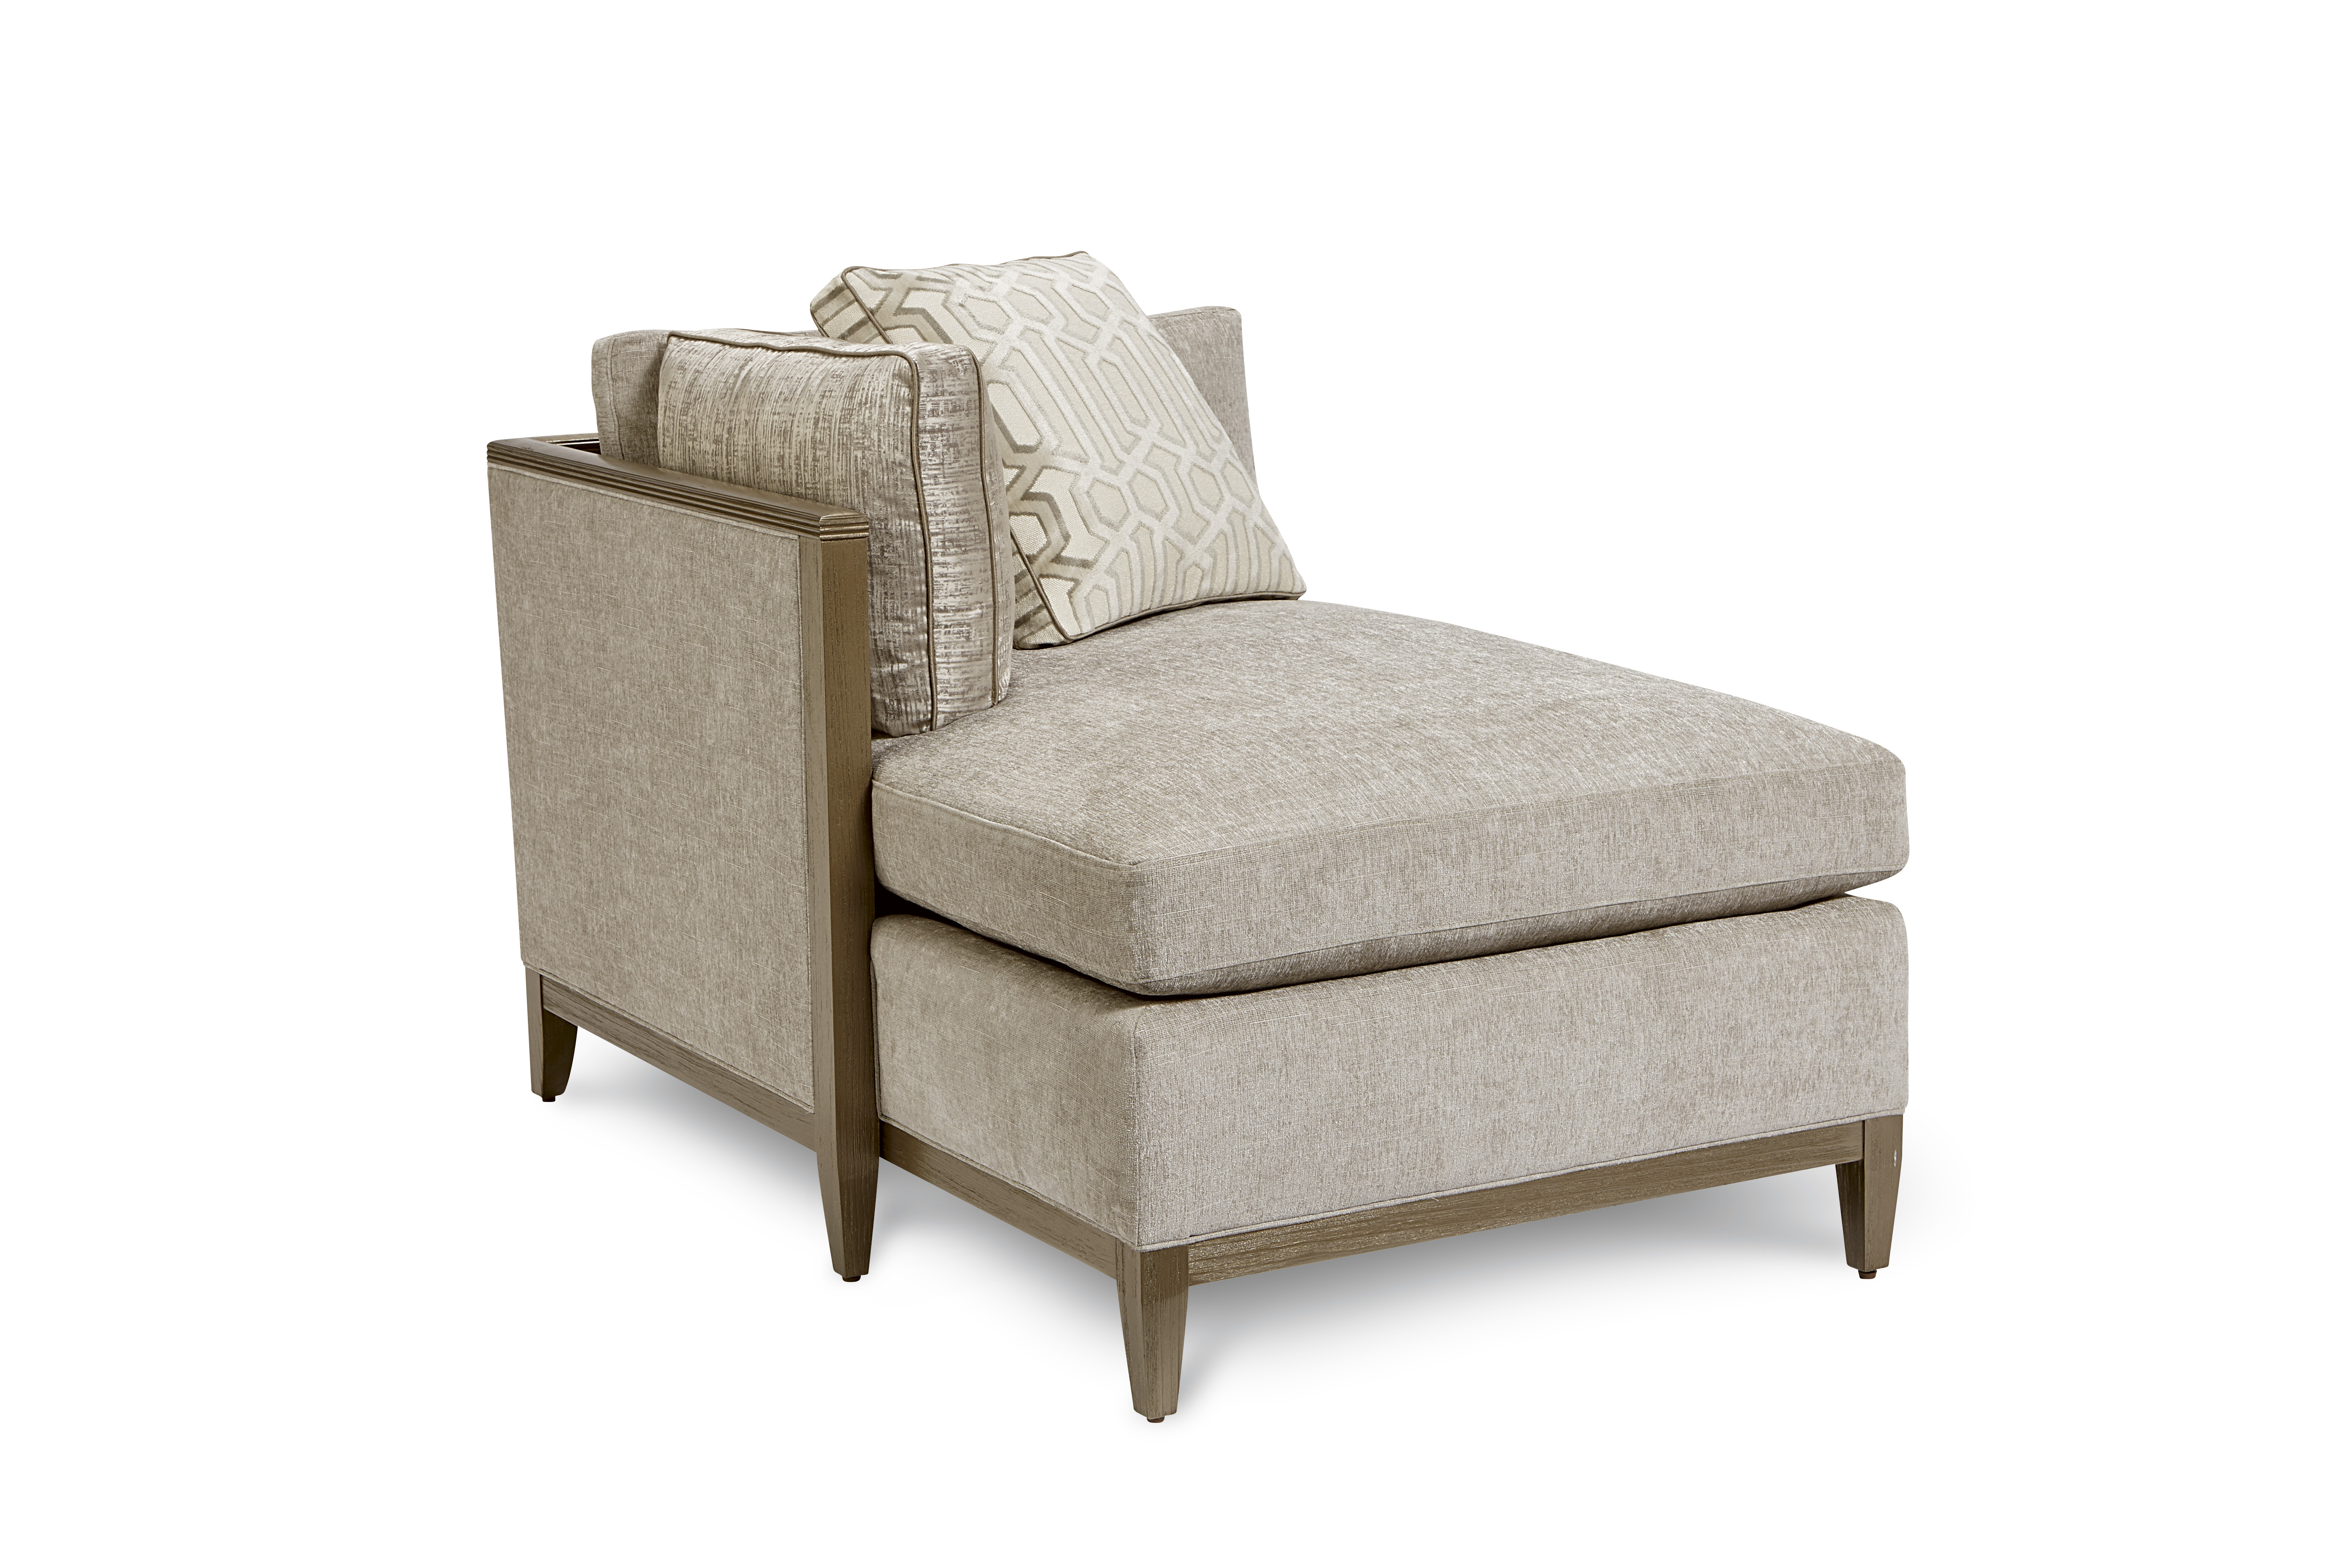 Groovy Cityscapes Astor 2 Piece Chaise Sectional Sofas And Sectionals Machost Co Dining Chair Design Ideas Machostcouk